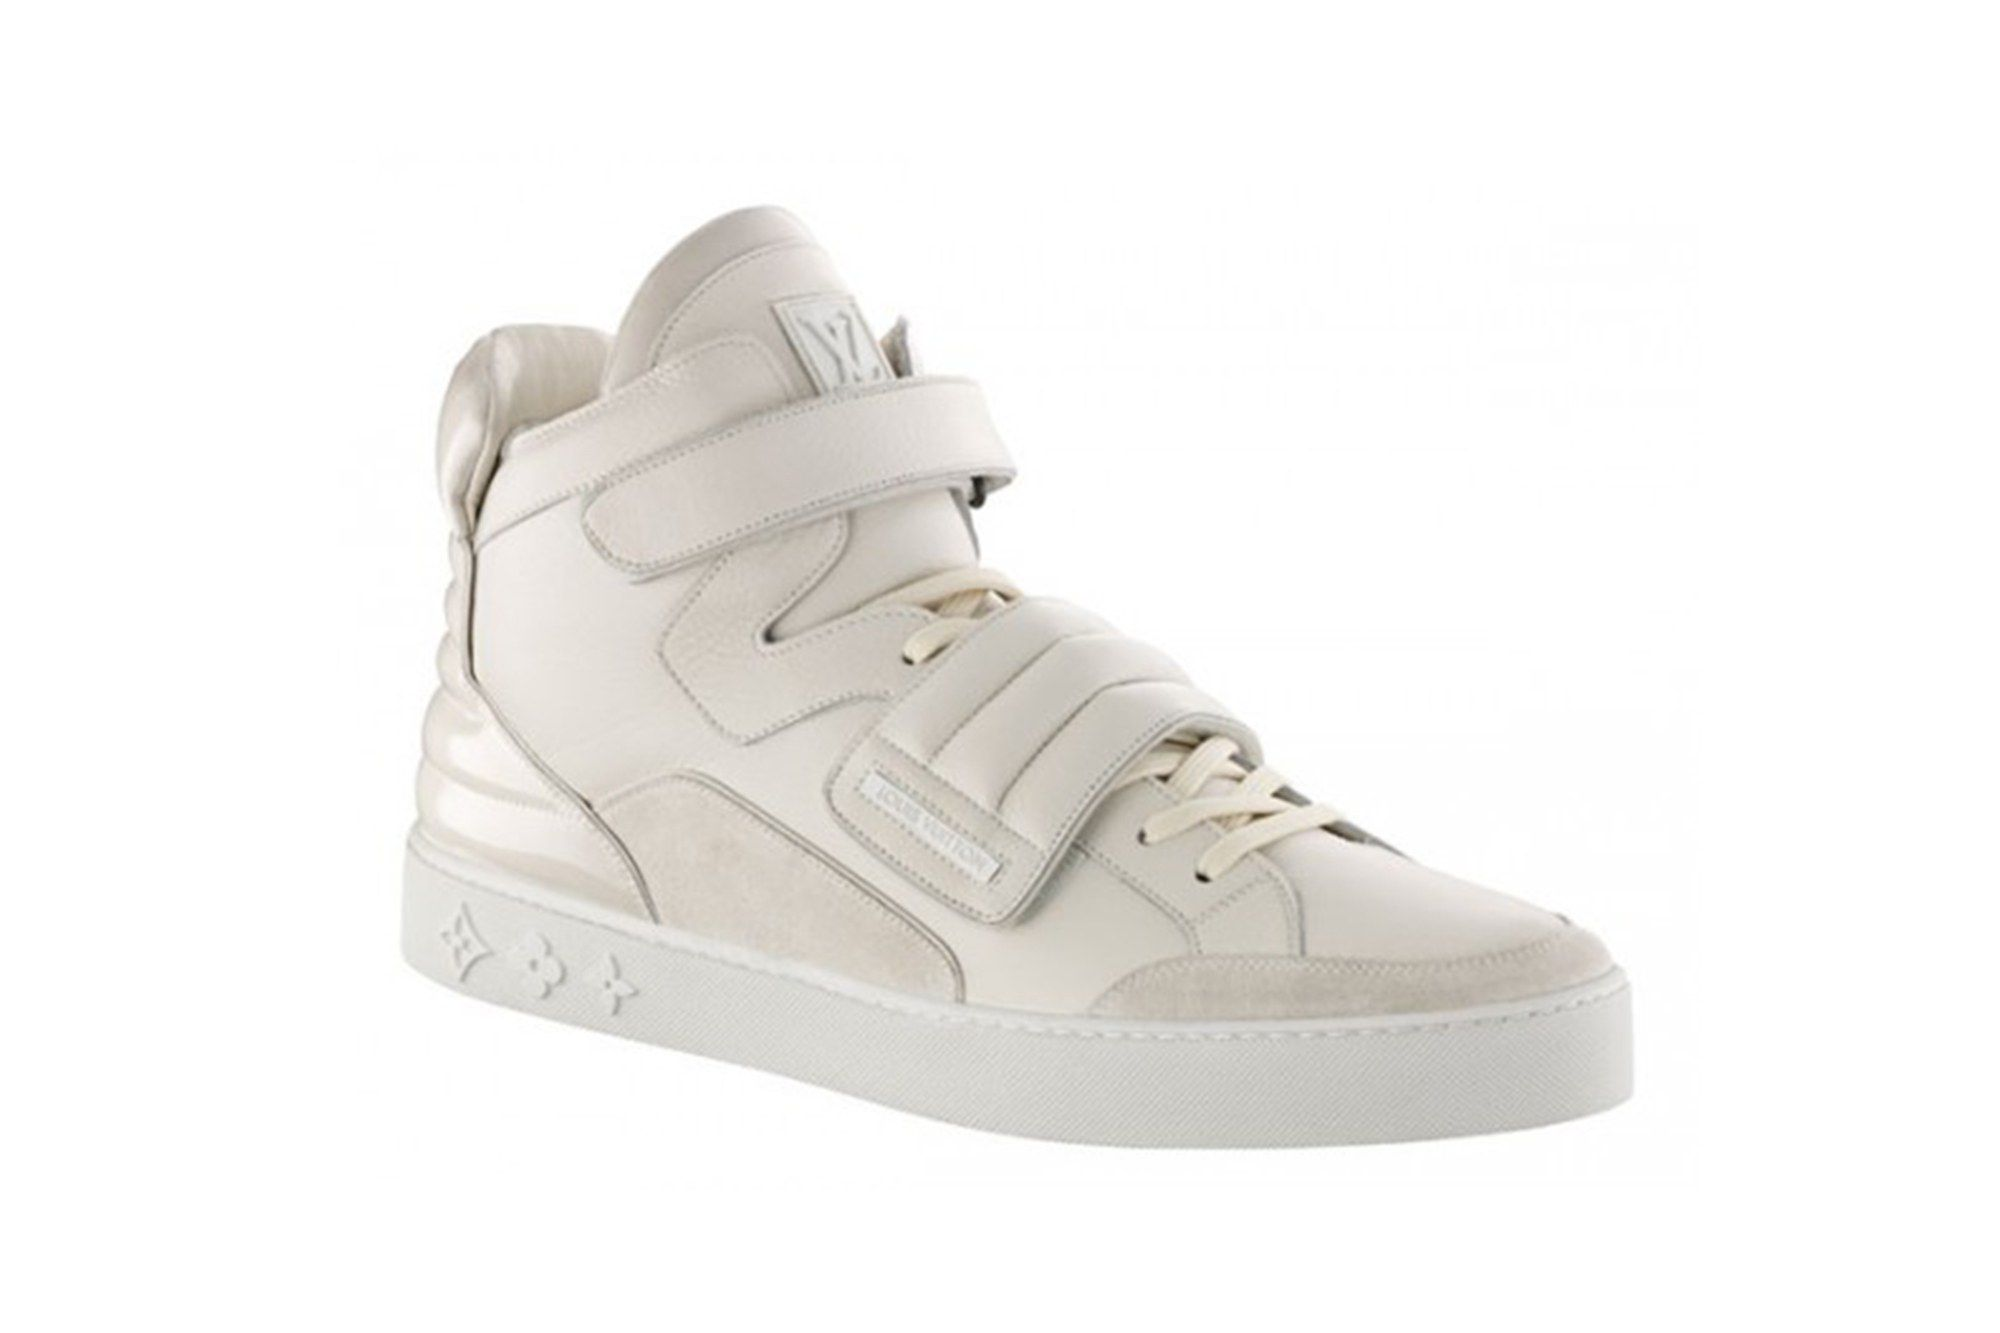 Every Sneaker Kanye West Ever Designed Ranked Louis Vuitton Shoes Sneakers Louis Vuitton High Tops Louis Vuitton Sneakers